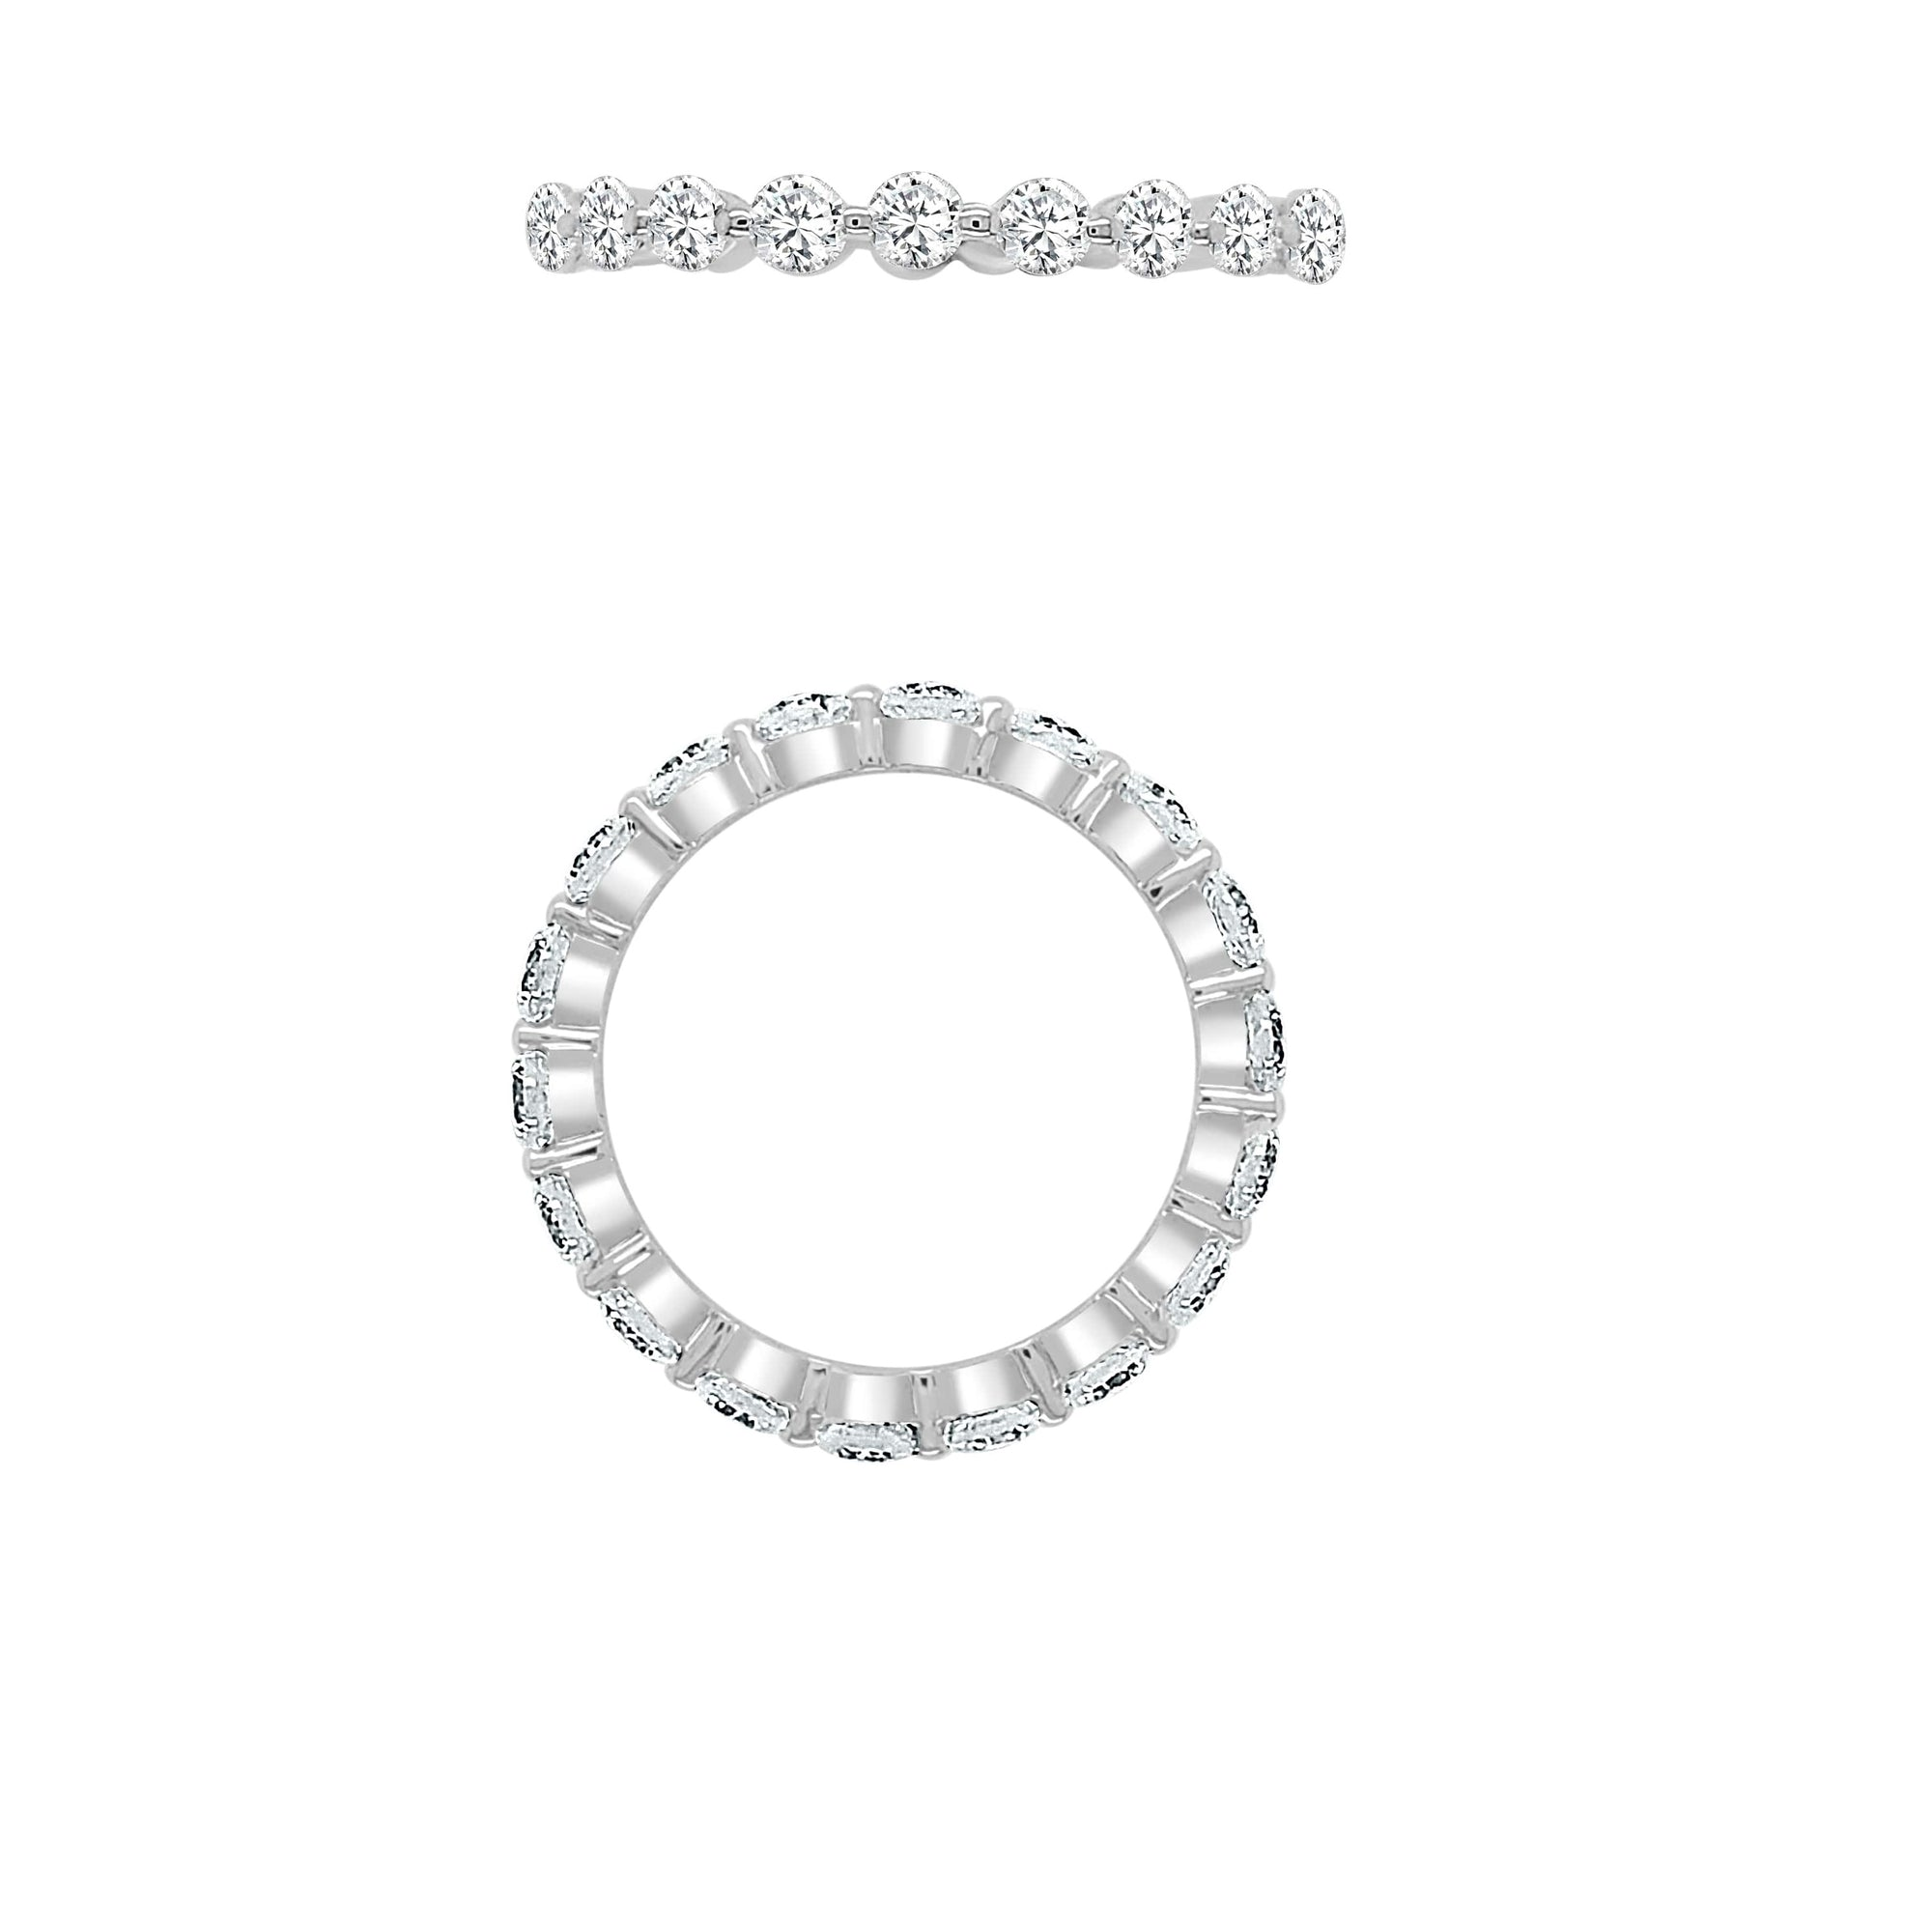 2 Prongs Eternity Diamond Band Made In 14K White Gold